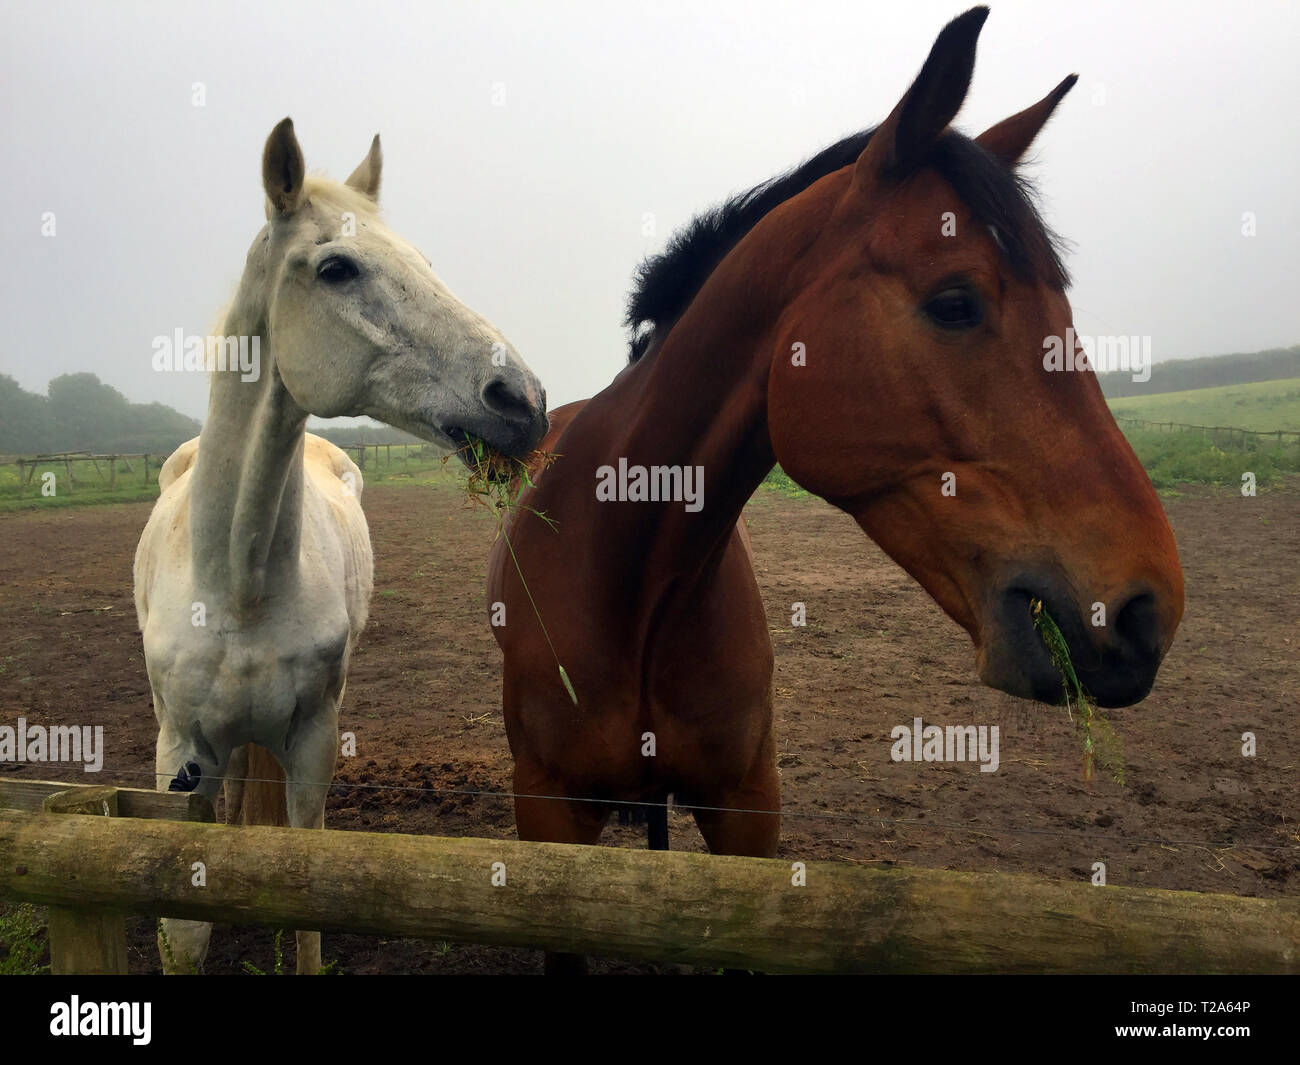 brown,gray,horse,horses,eating,grass,and,looking over fence,with,ears,pricked,alert,interested,hopeful,England,UK, - Stock Image